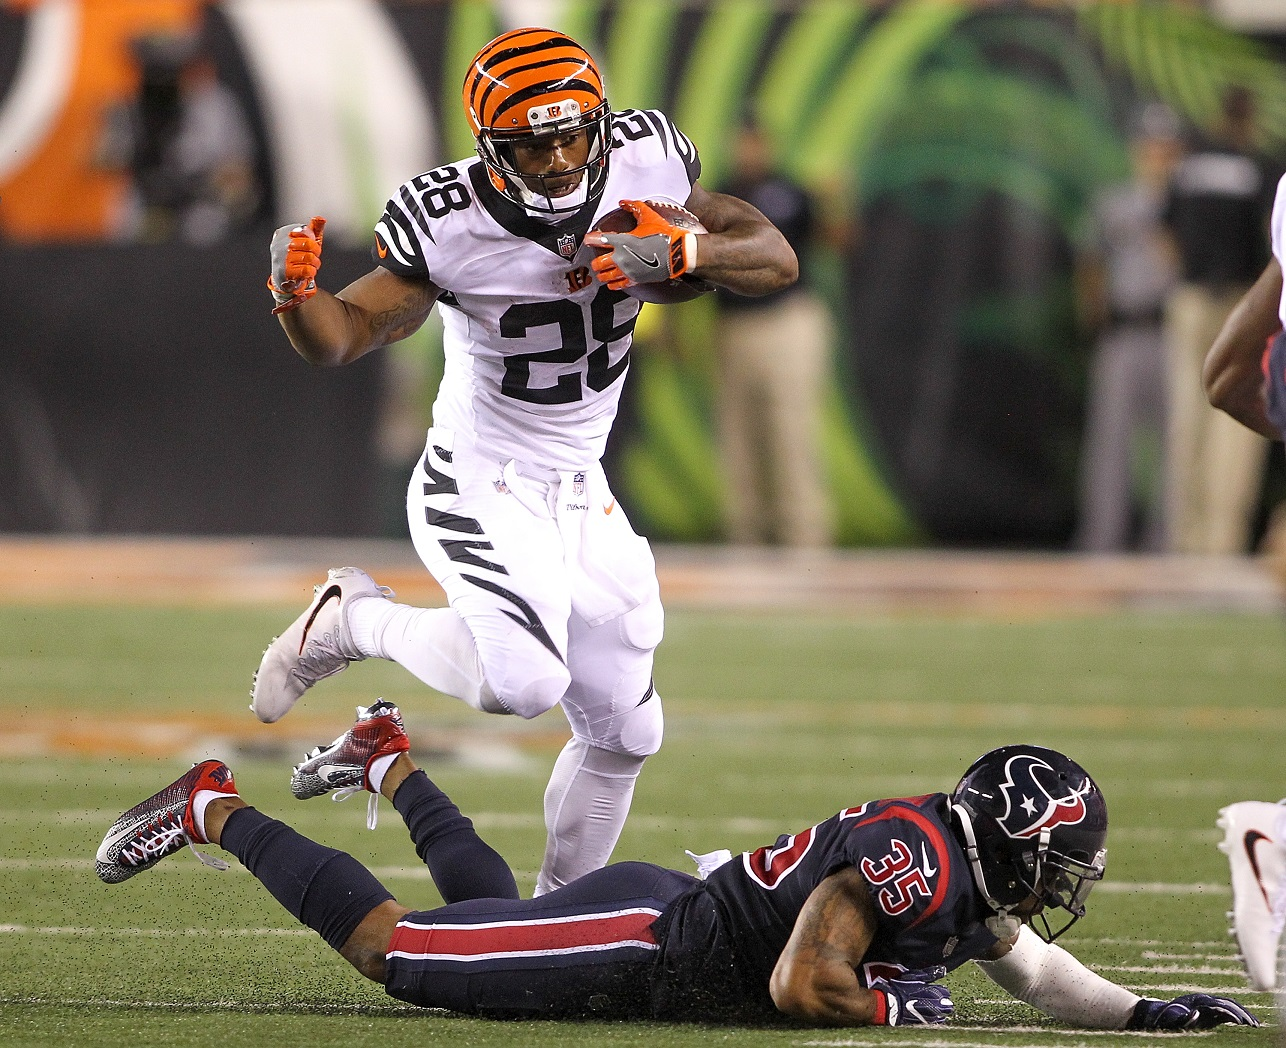 Packers: Rookie defensive backs create buzz in win over Bengals